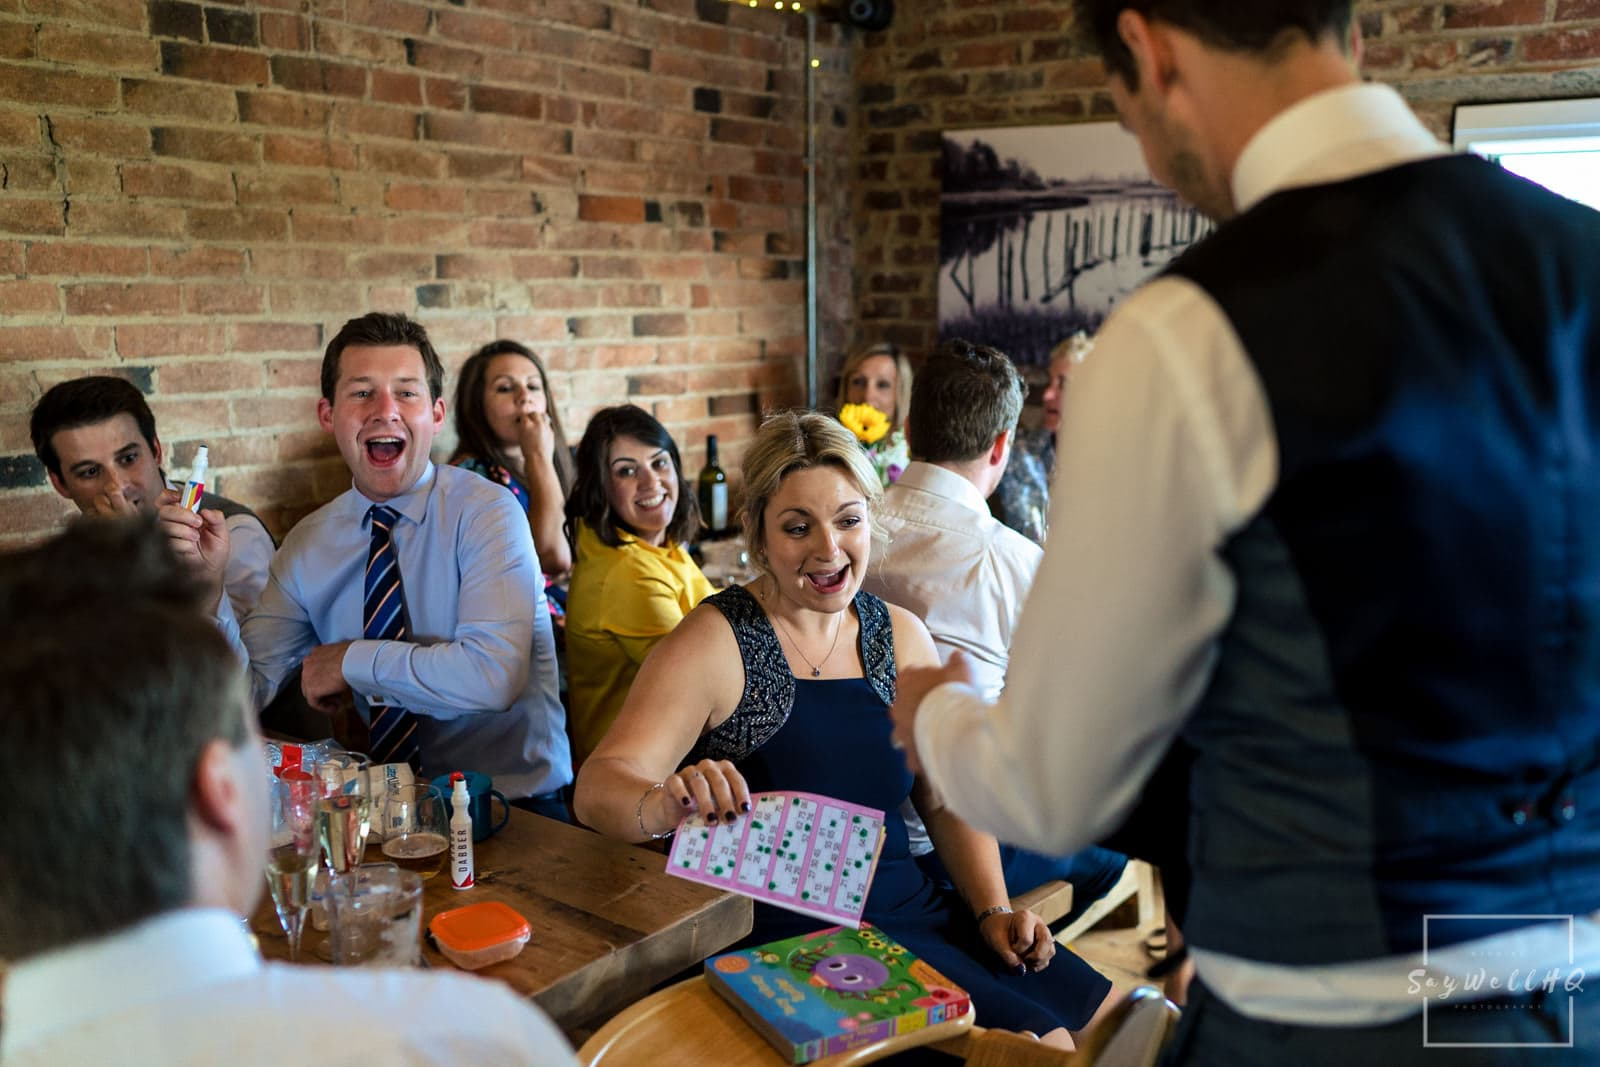 Leicester Wedding Photography + Leicester Wedding Photographer + Humanist Wedding Photographer + wedding guests playing bingo with the Bride and groom calling out the numbers